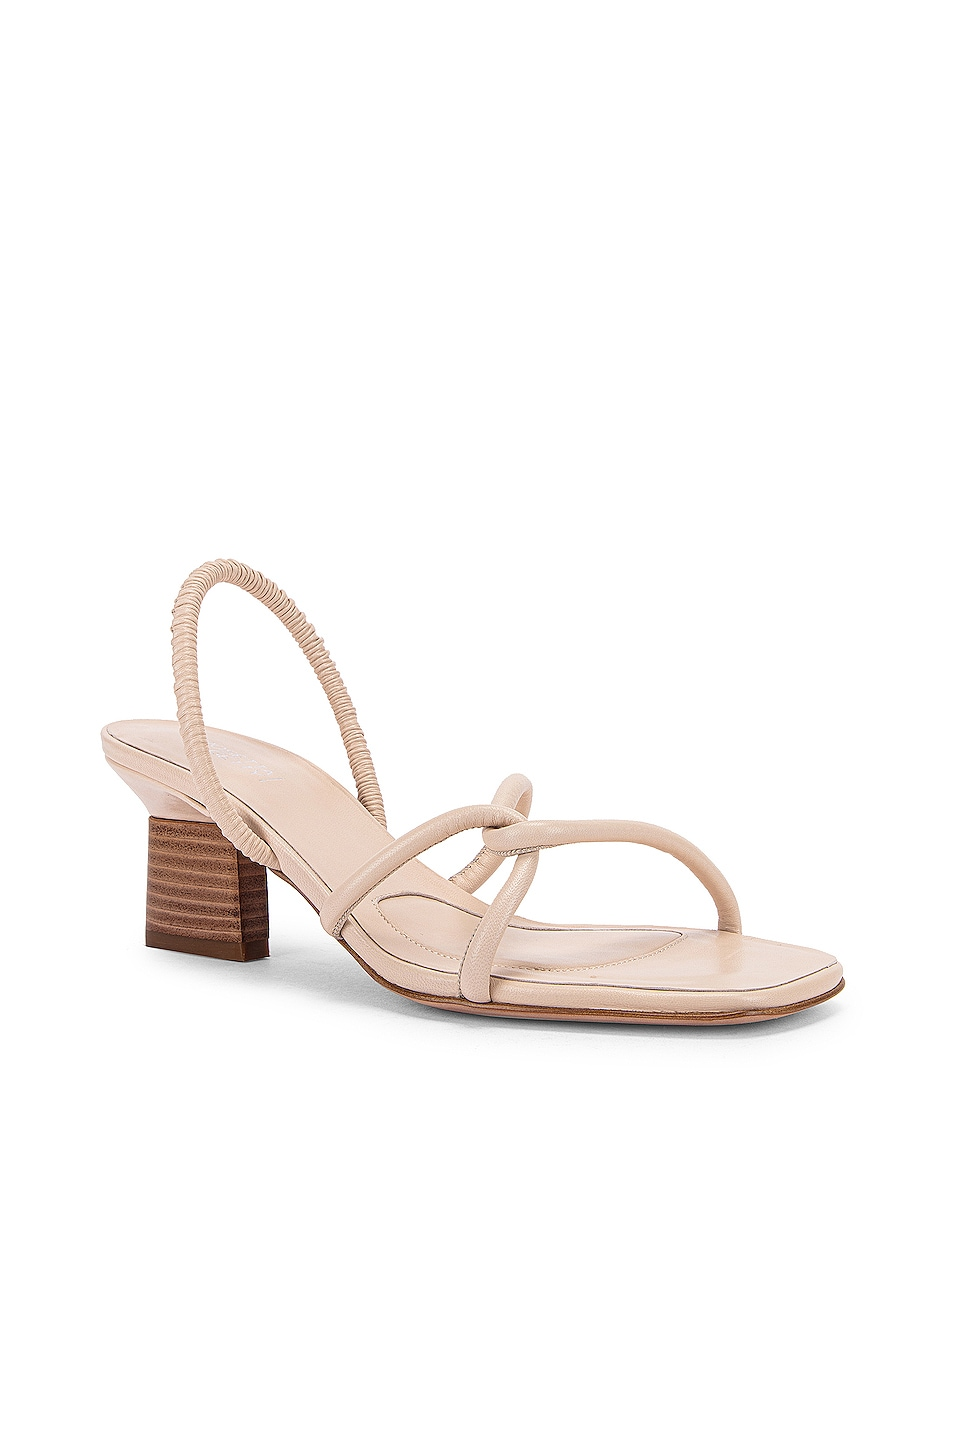 Image 2 of Rosetta Getty Strappy Heeled Slingback Sandals in Parchment